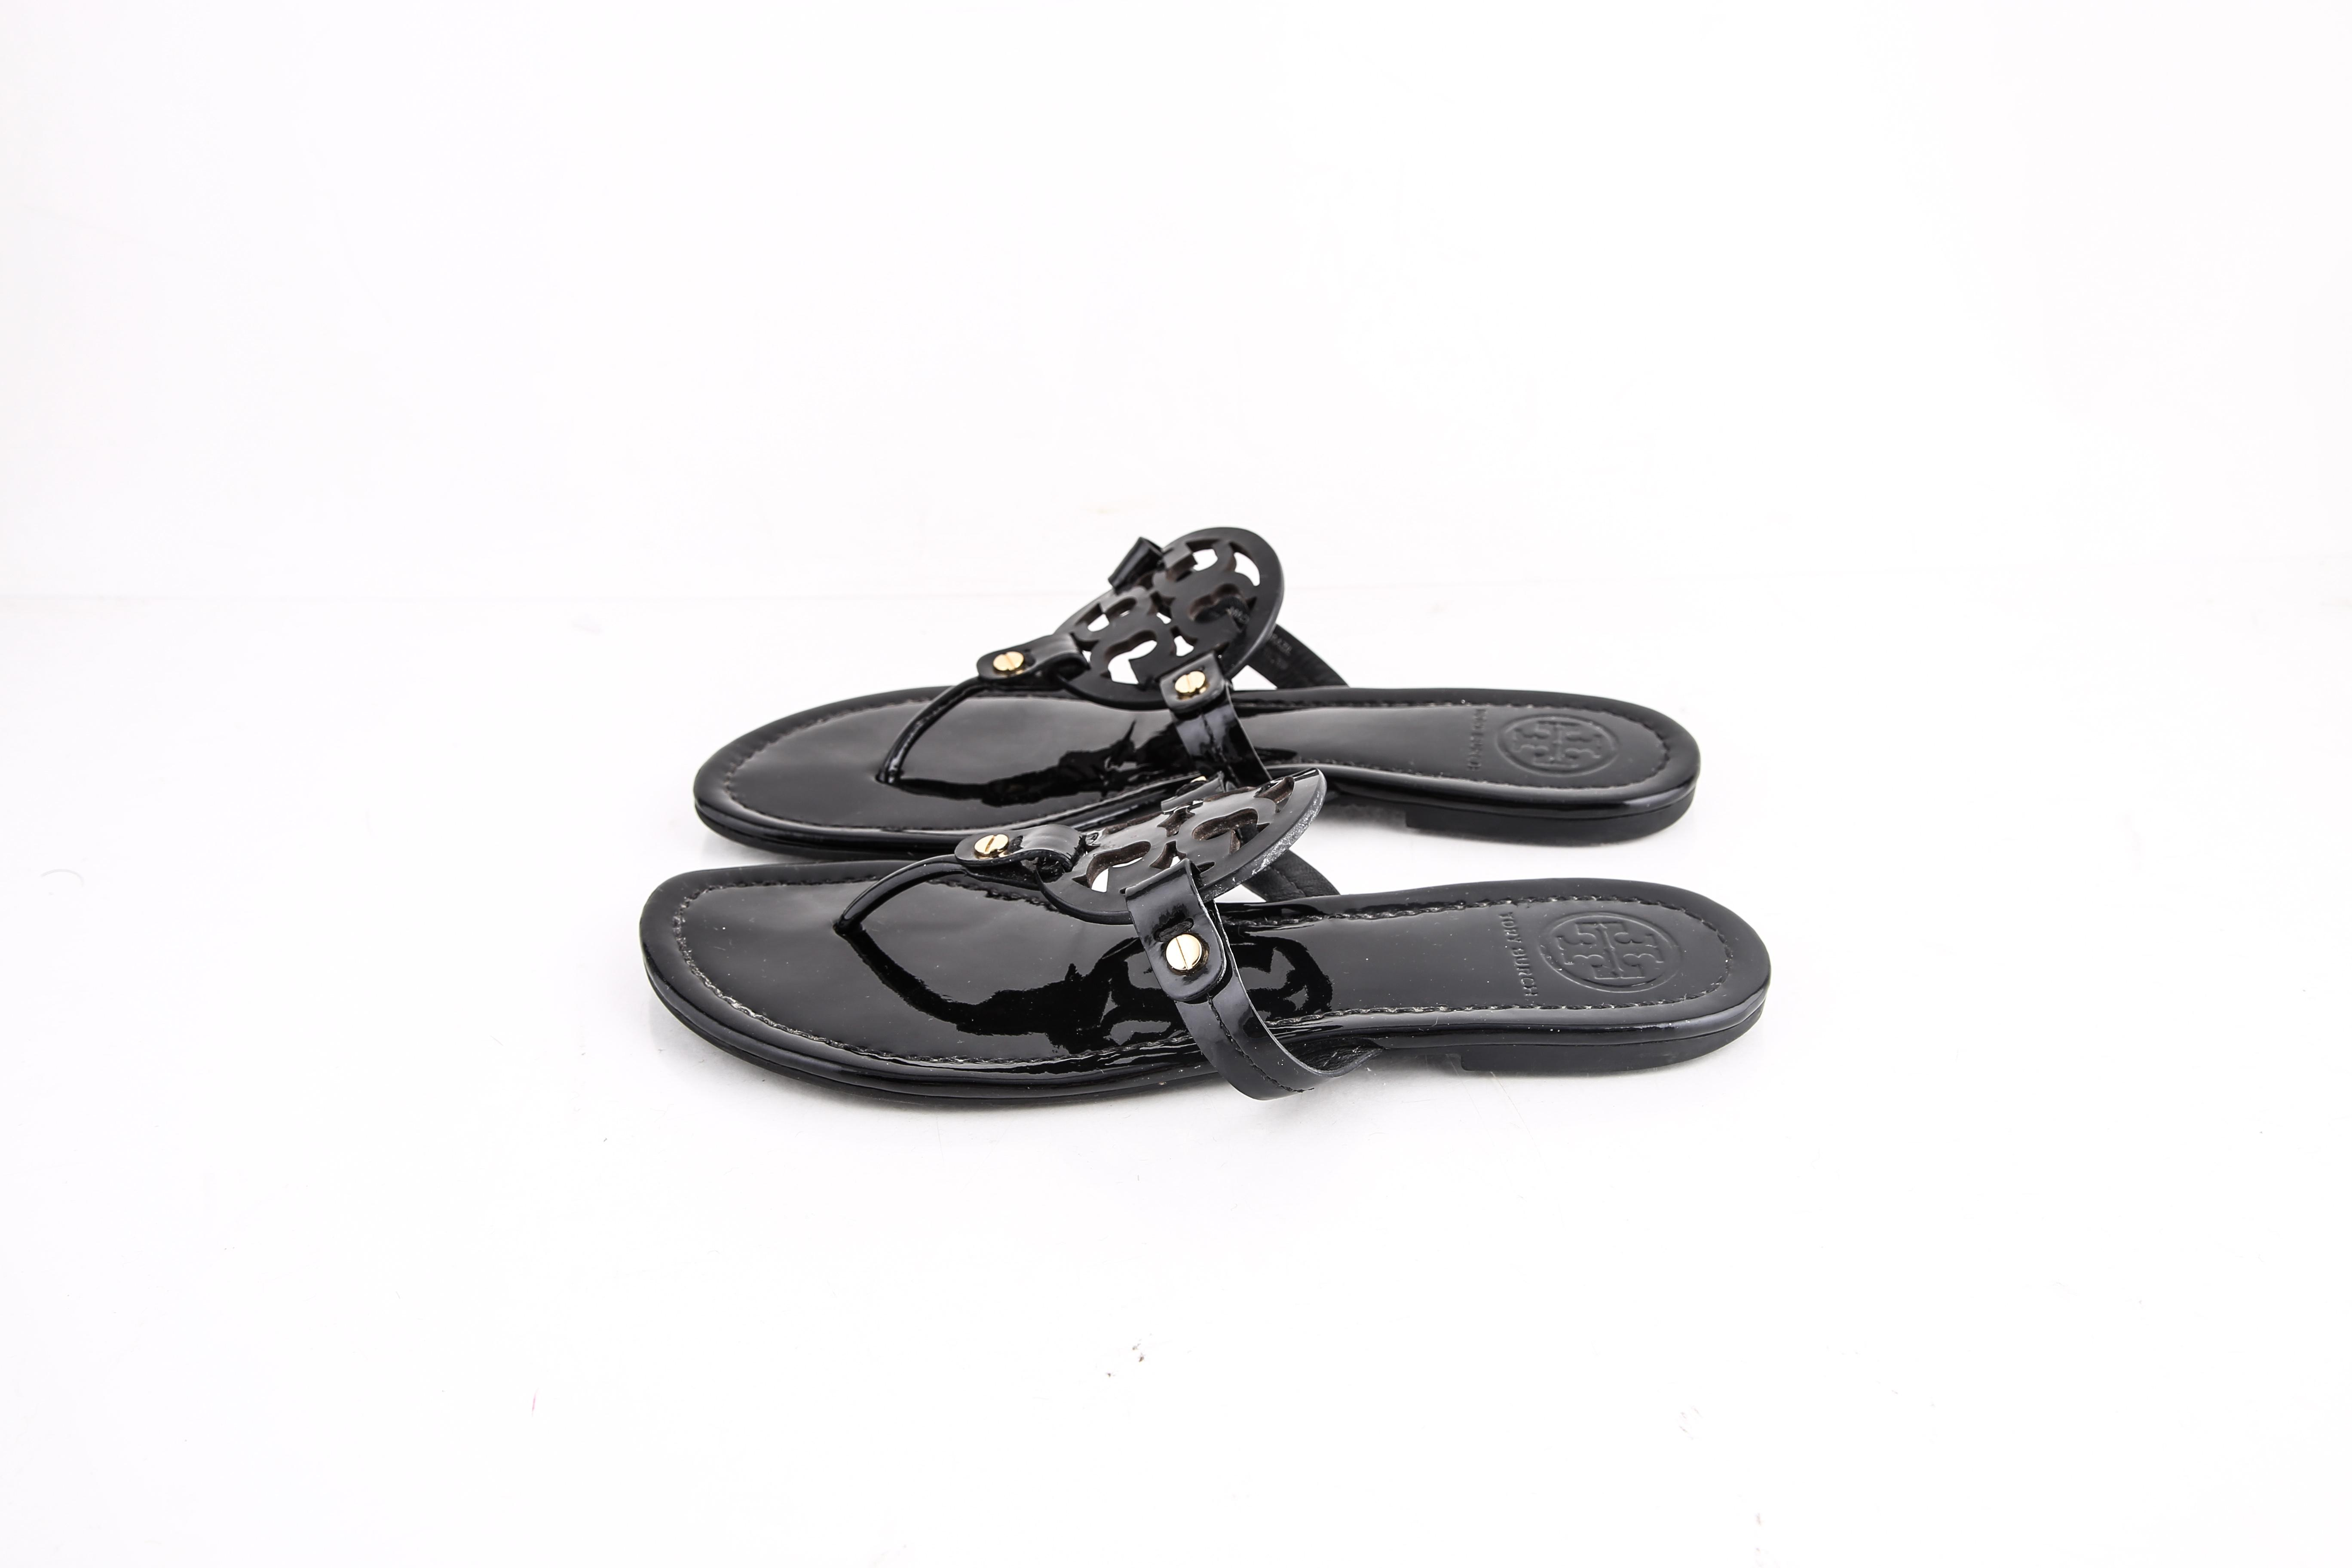 d41f30f80a77 ... B Tory Burch   Black Miller Sandals Size US 8 8 8 Regular (M